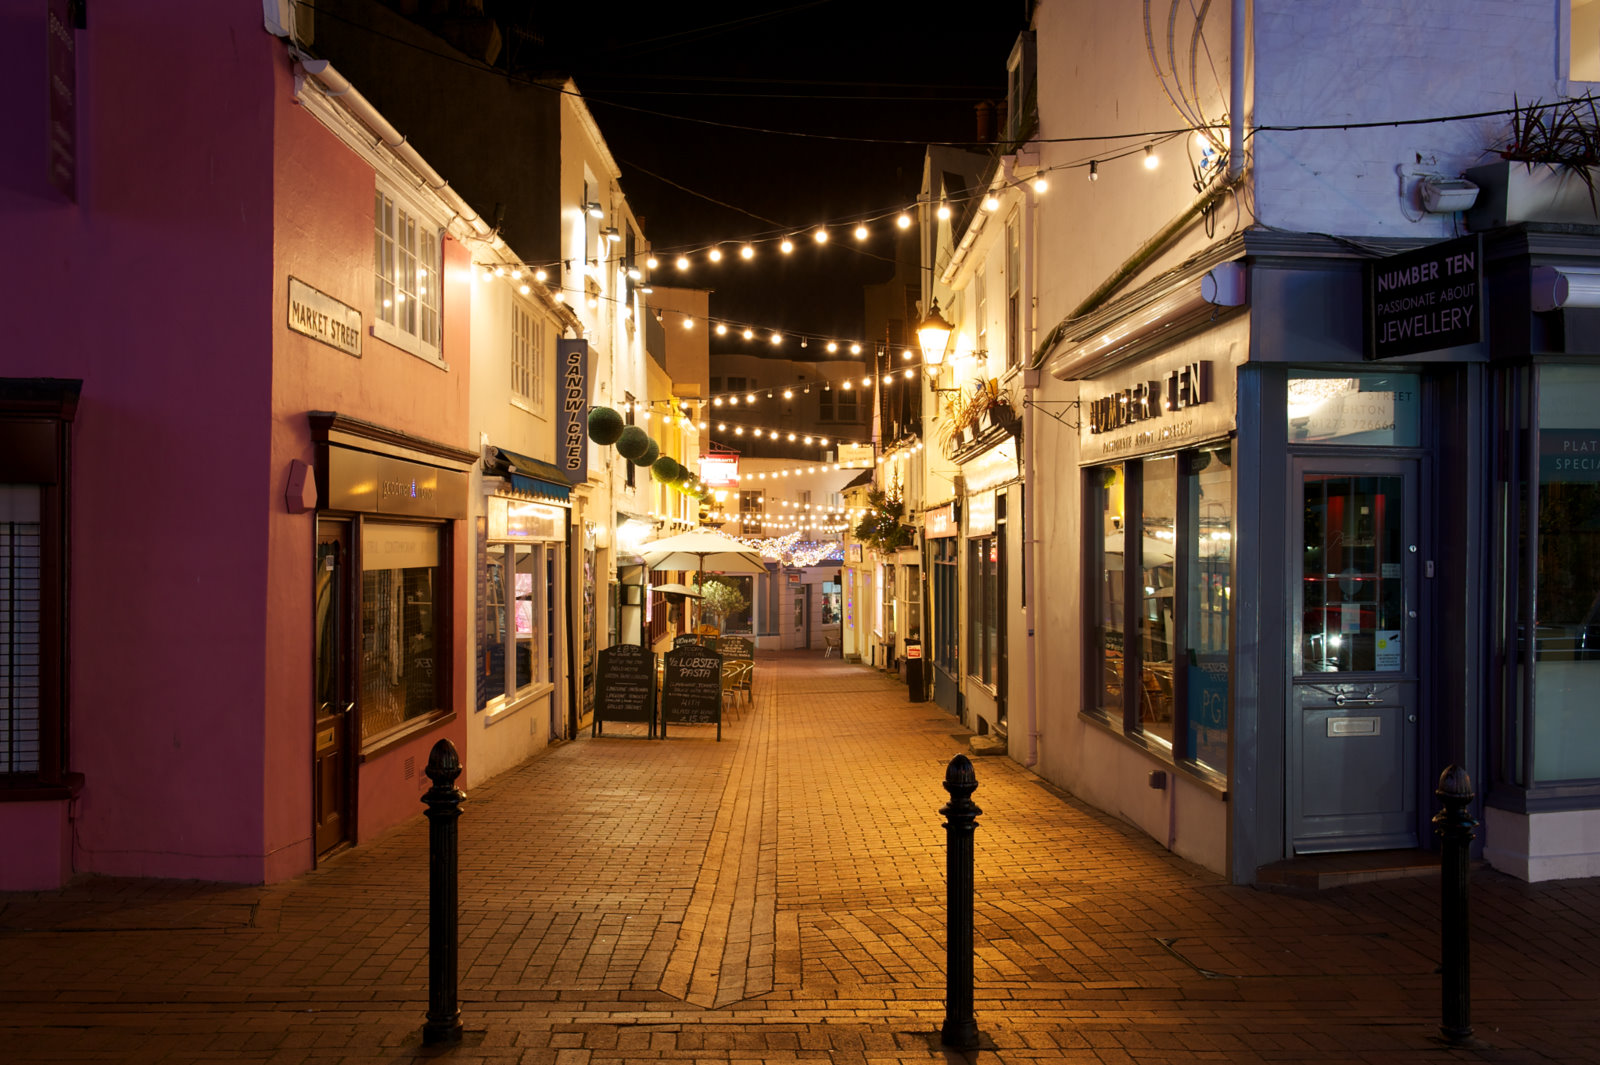 http://intranetpzl.com.br/expo-mundi/wp-content/uploads/2015/11/brighton-night-time-shots-lanes-001.jpg